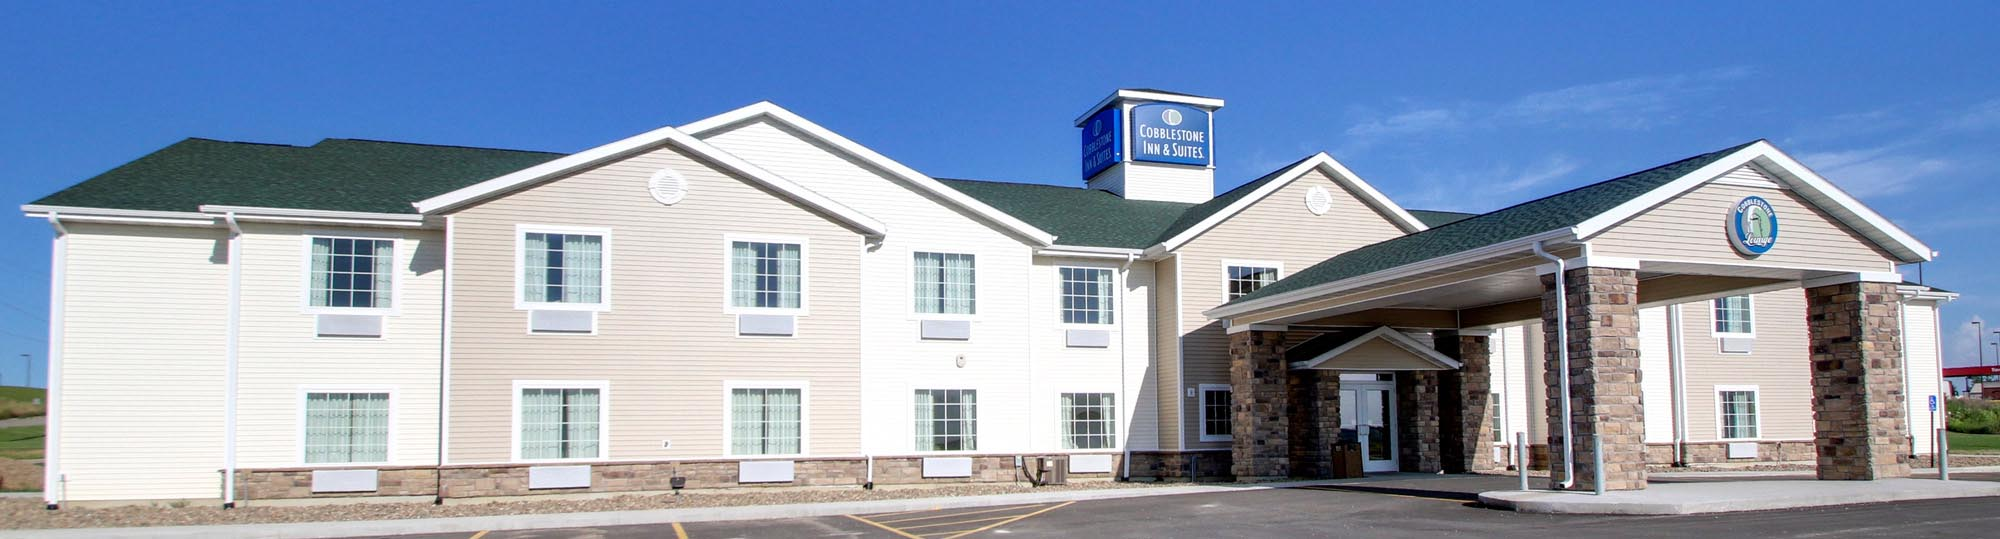 Cobblestone Inn And Suites Avoca